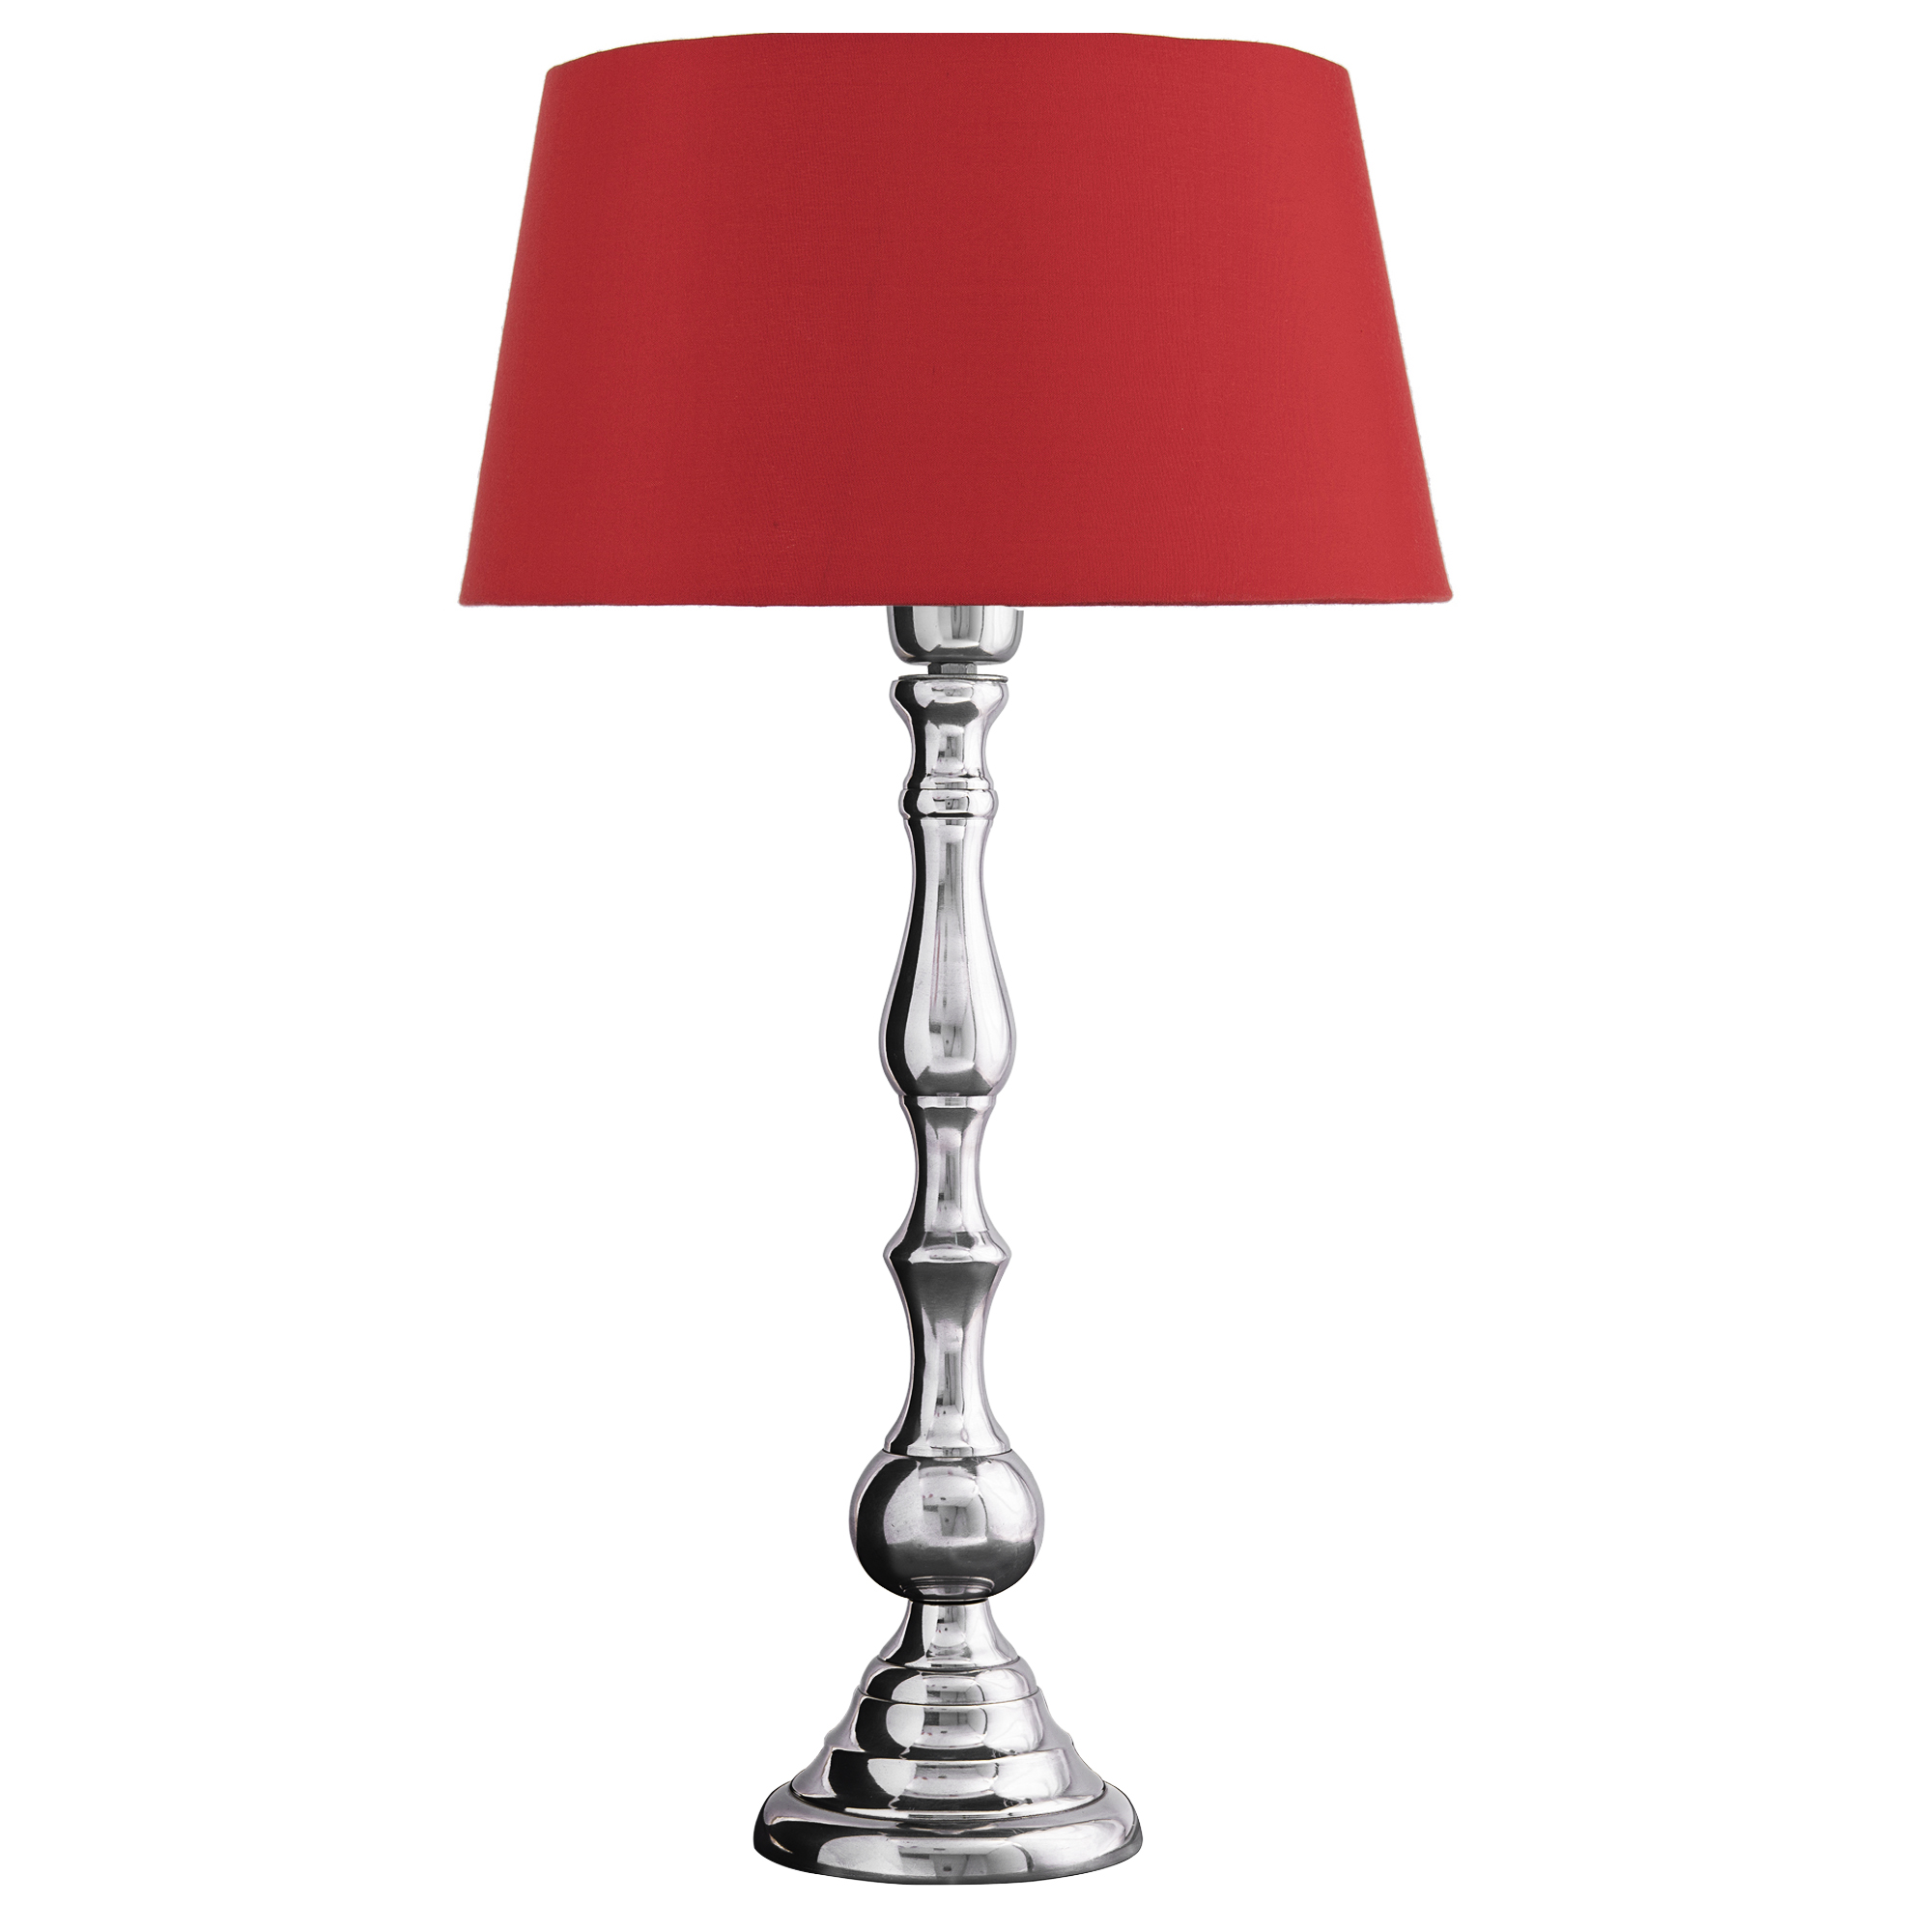 Teardrop Chrome Lamp With Red Shade